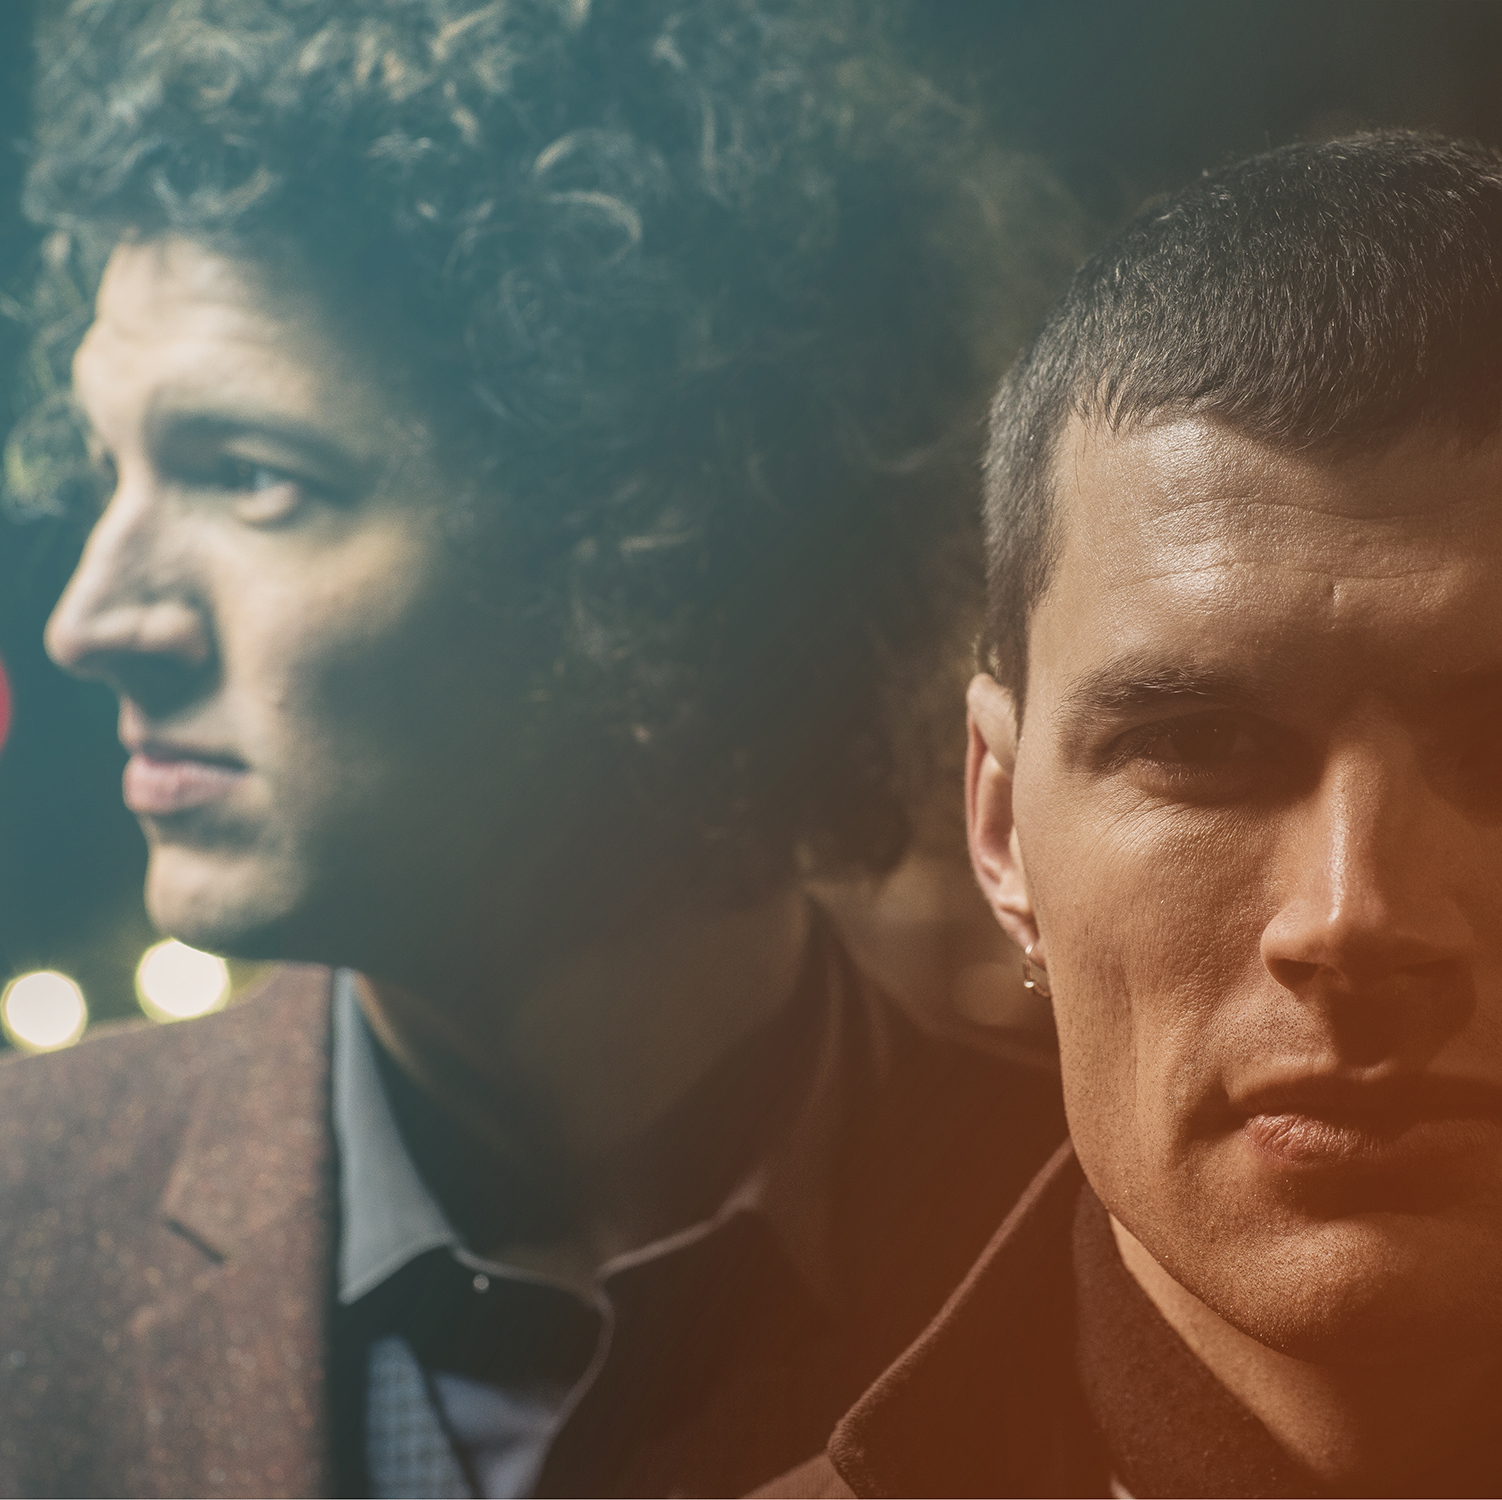 FKC Luke Joel EXCLUSIVE to the Herald: After hitting #2 on the charts, for King & Country bring their You Matter – The Tour to Brentwood, Friday night